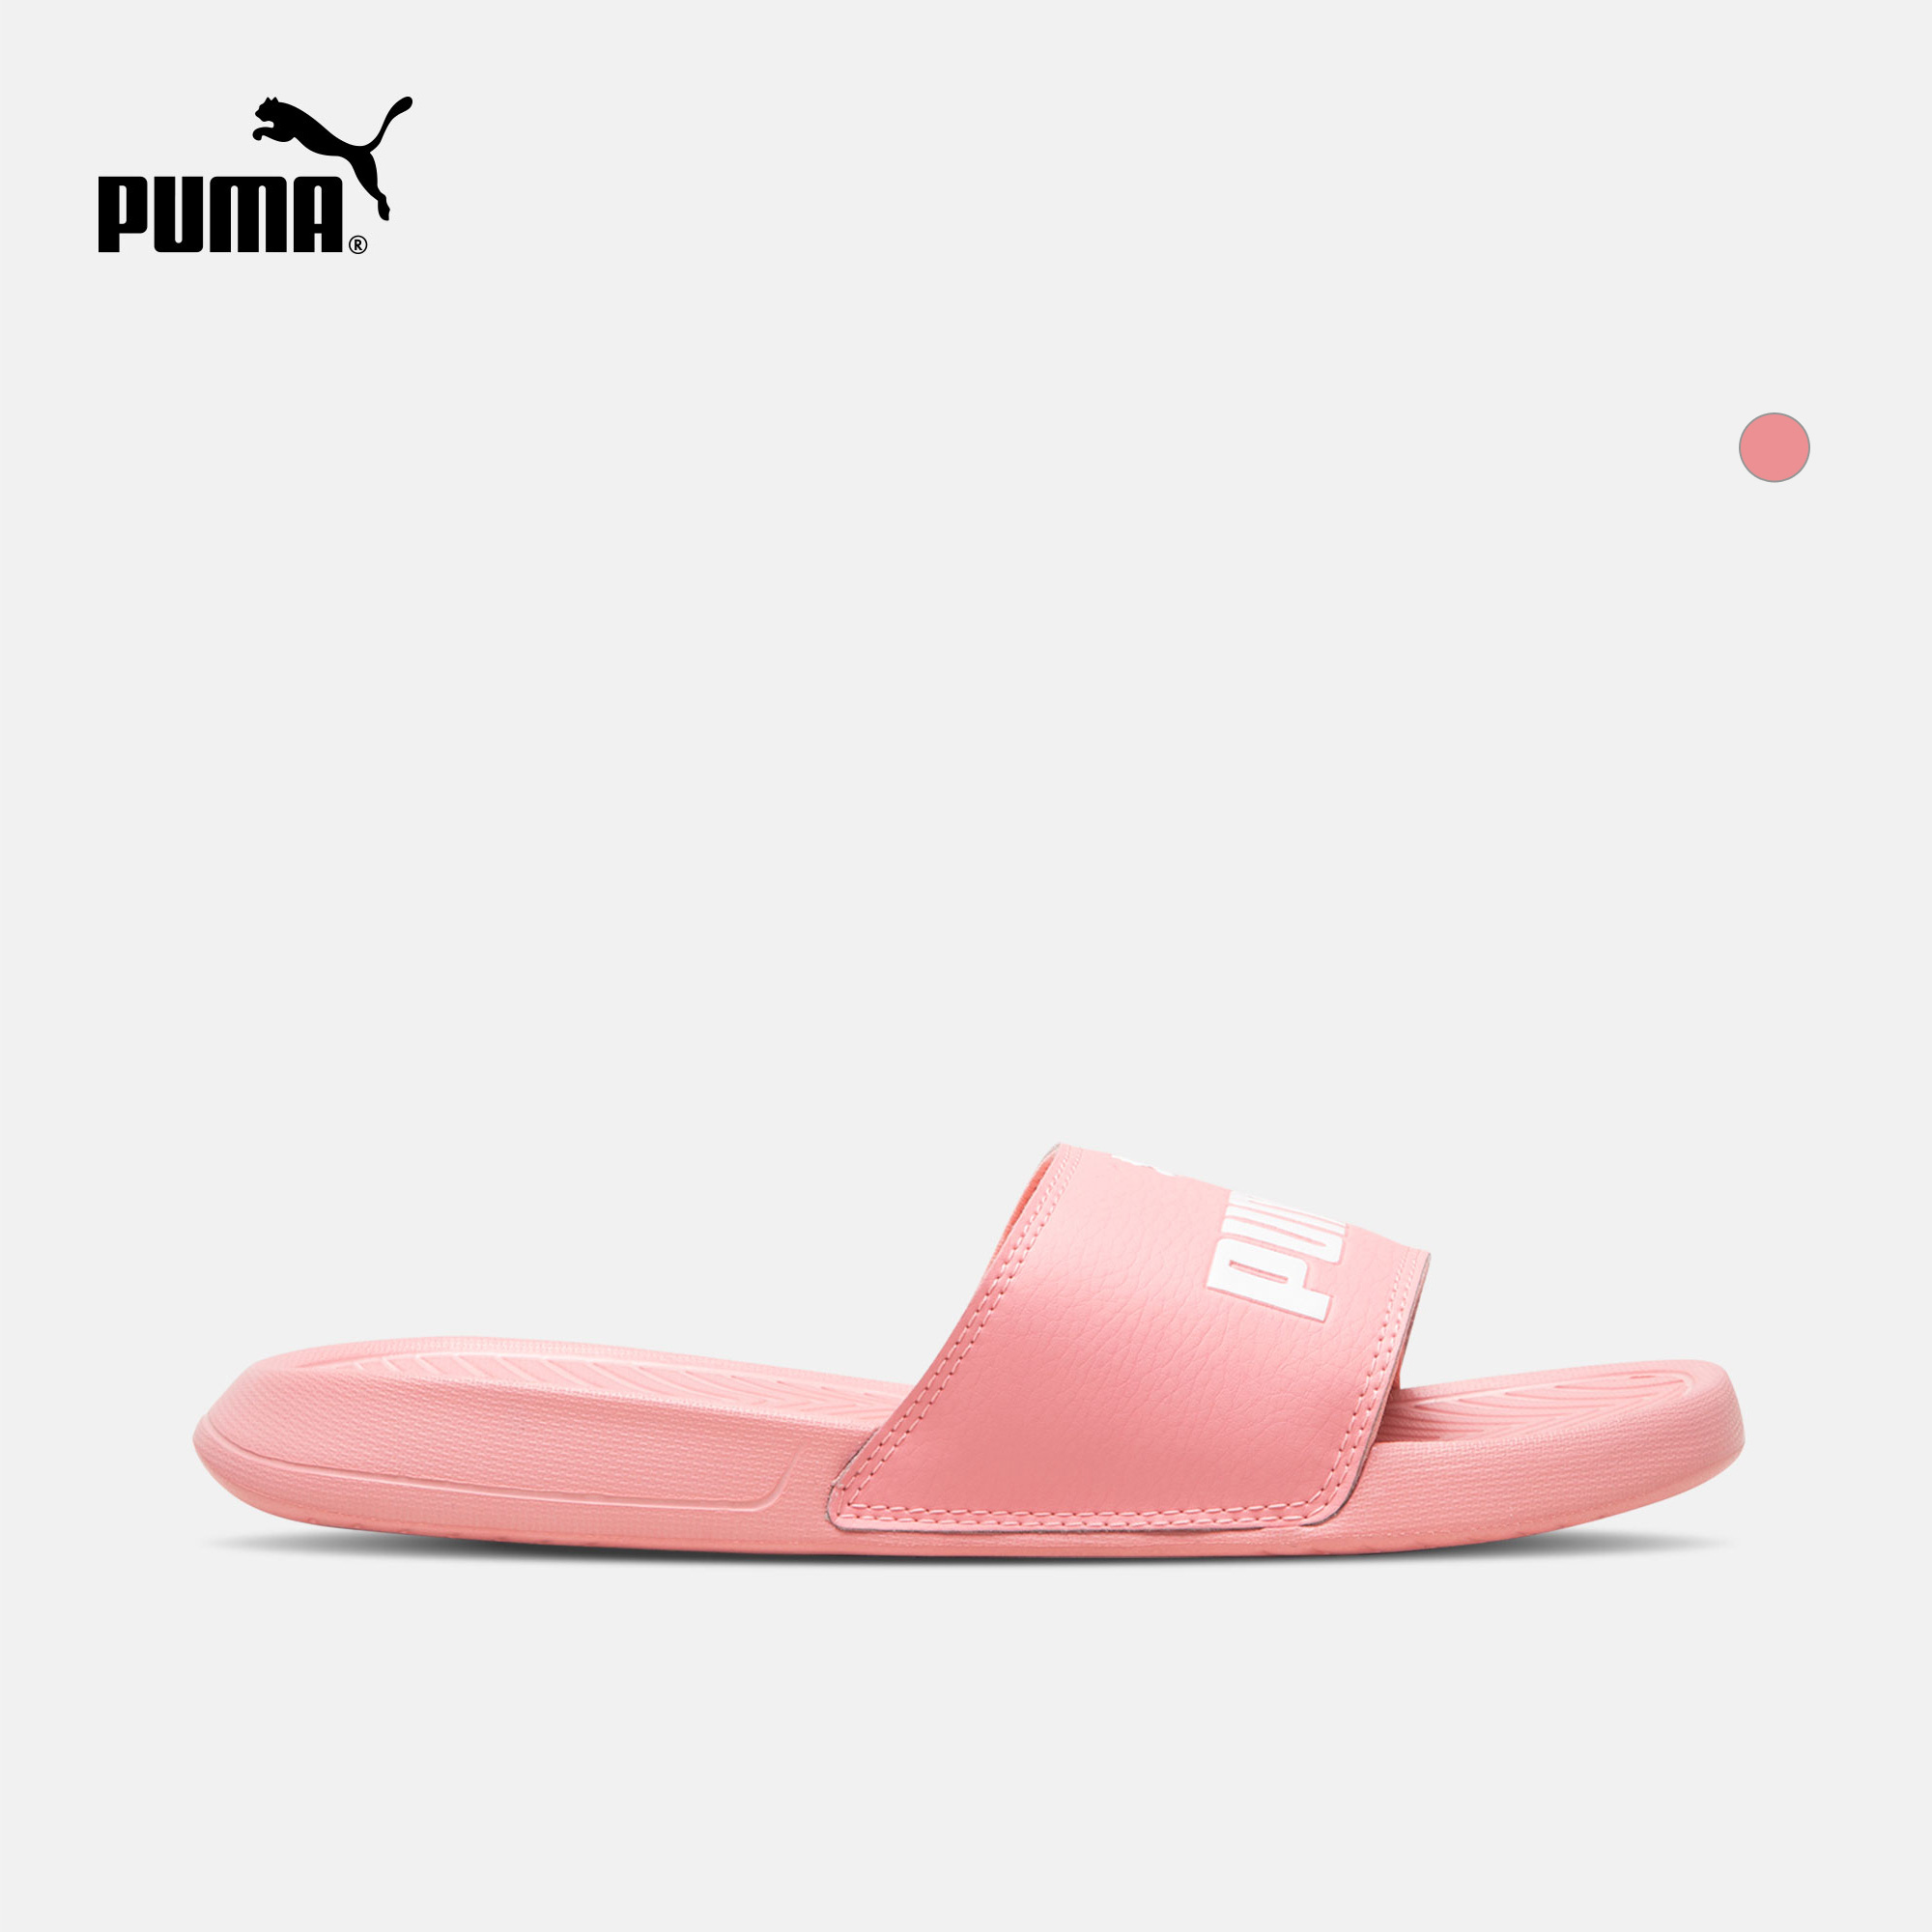 4a883d74781915 ... PUMA Hummer Official Men s and Women s Slippers Popcat 360265 ...